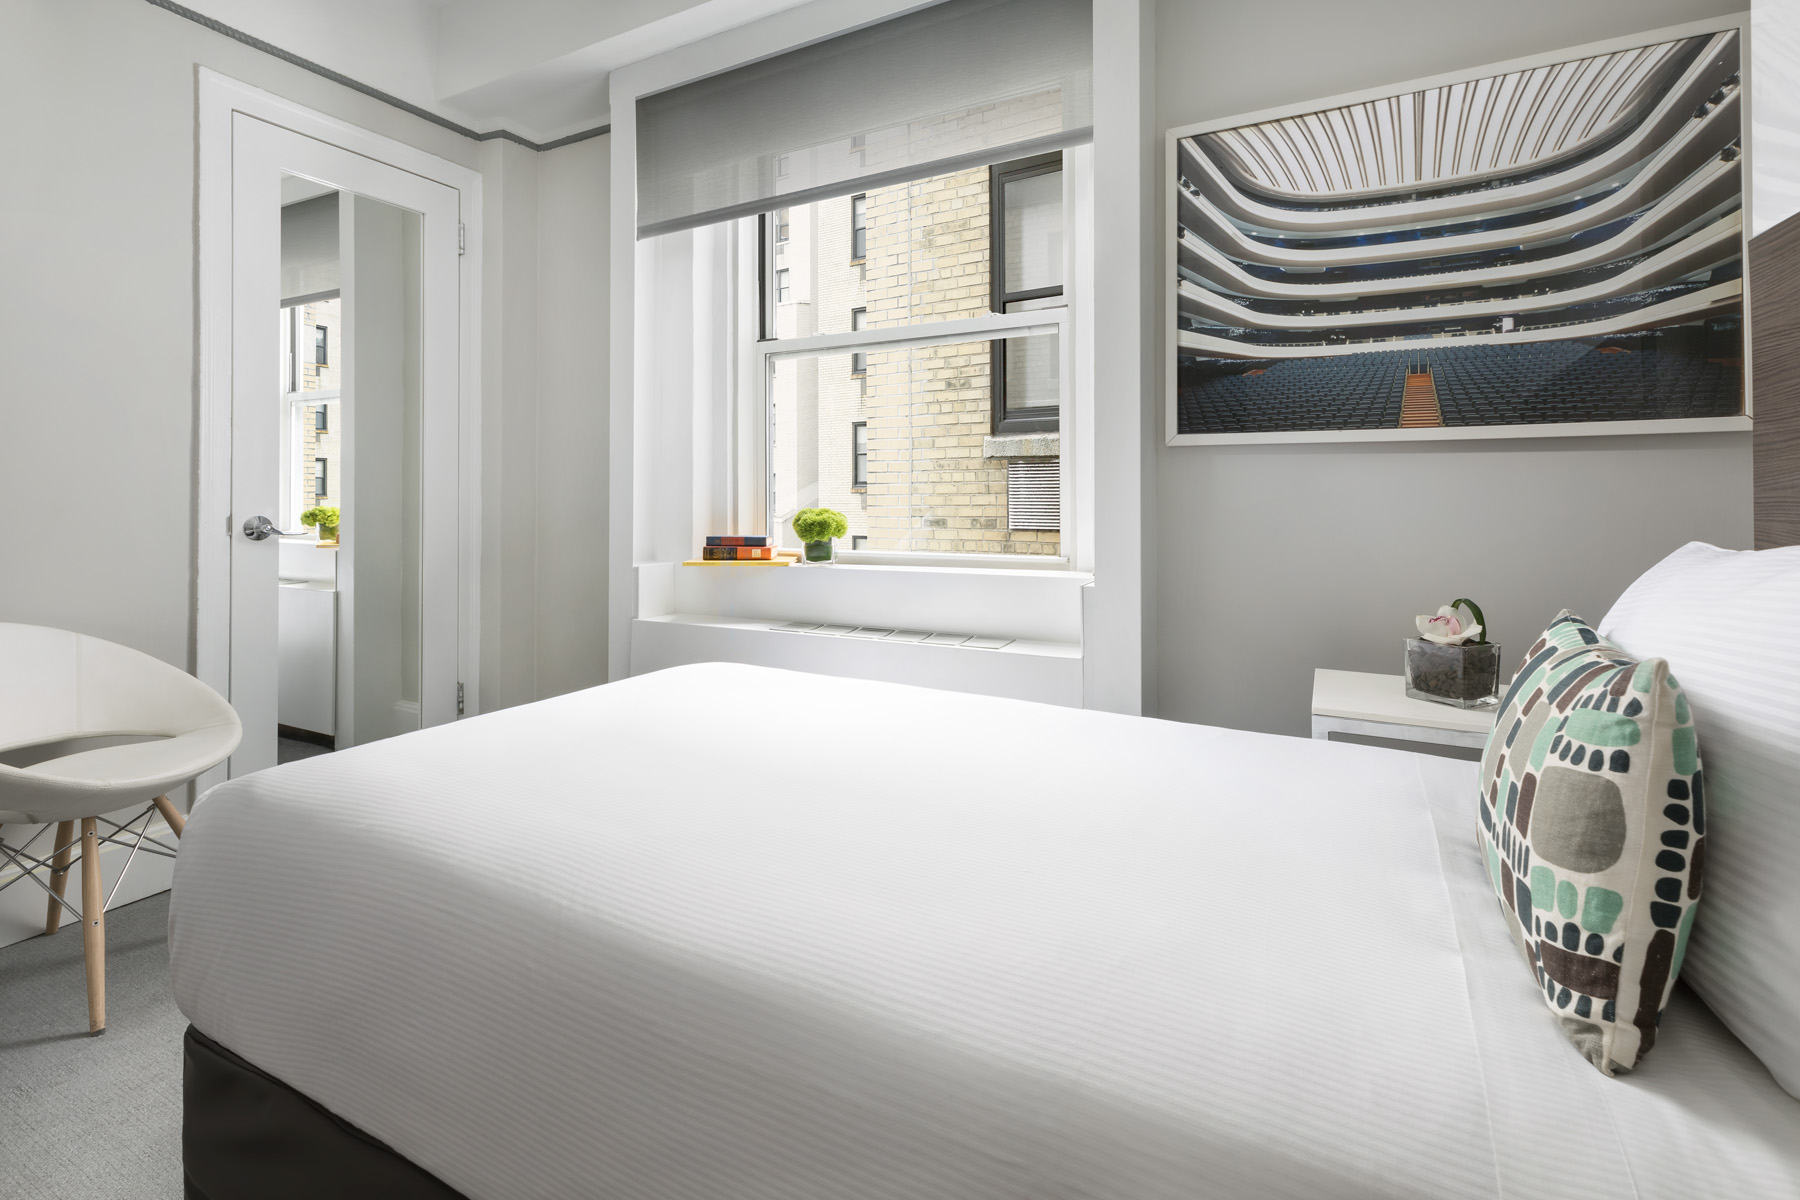 https://www.hotelsbyday.com/_data/default-hotel_image/2/13921/broadway-petite-2.jpg